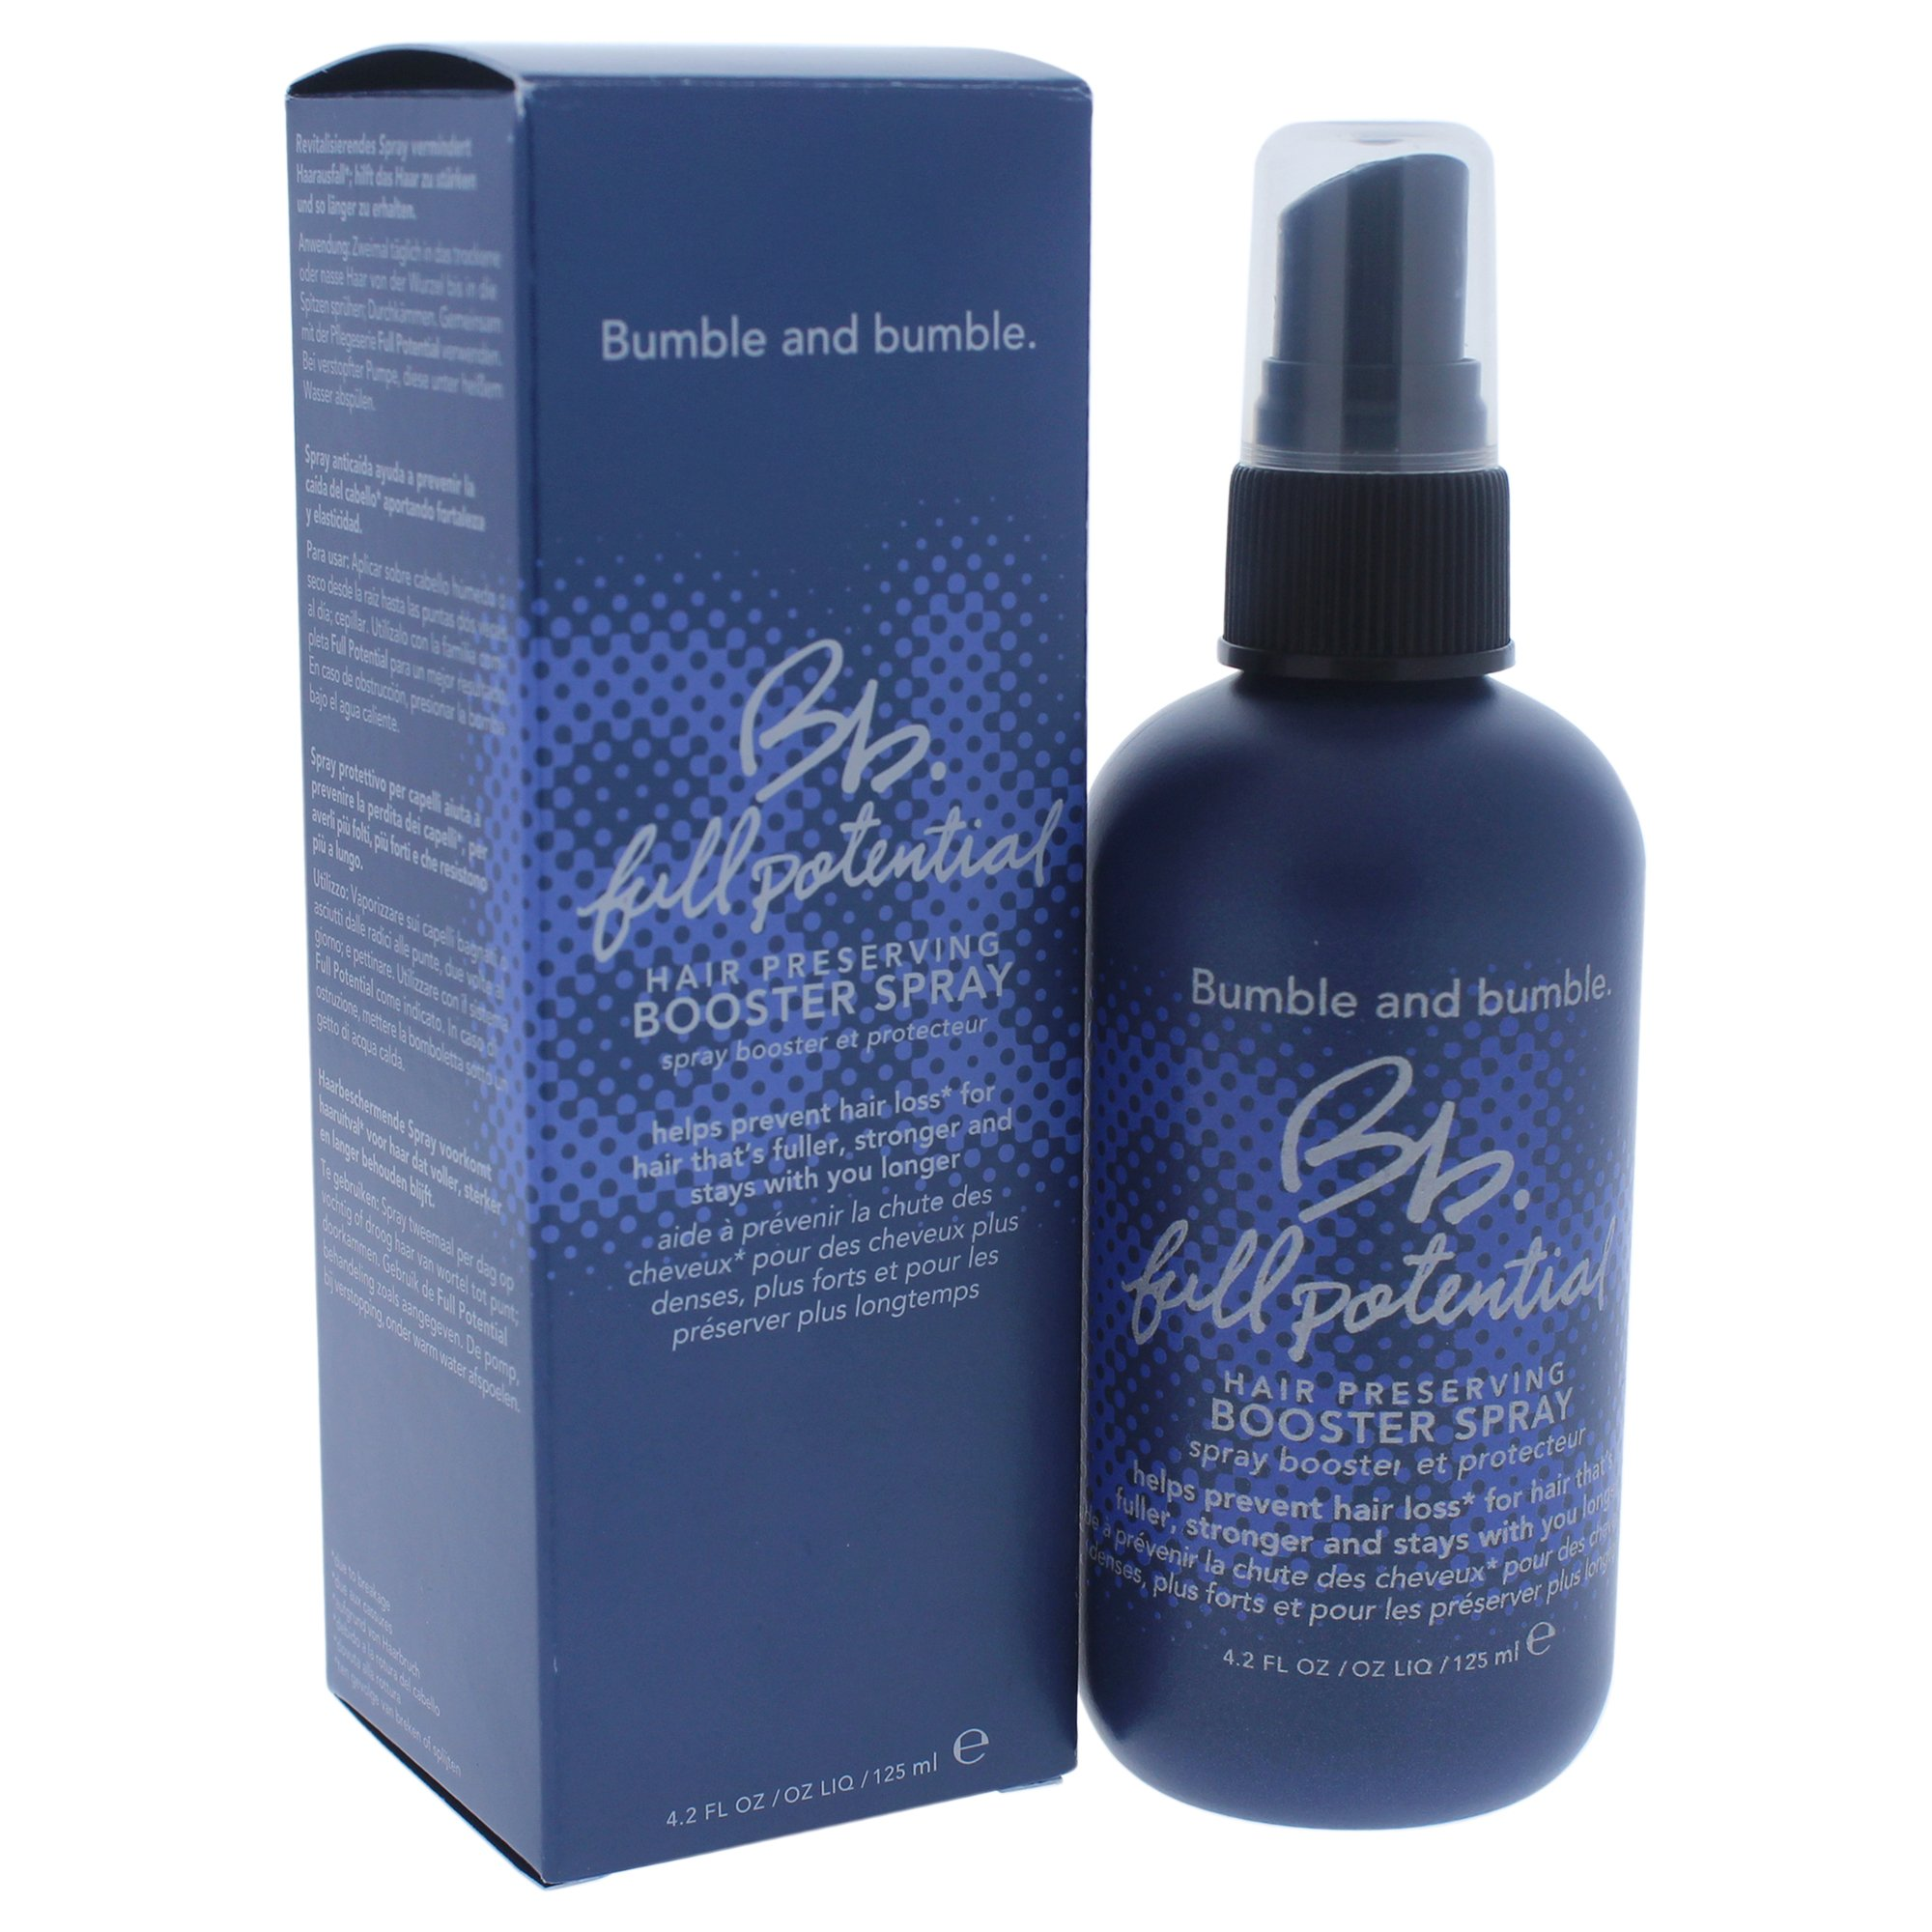 Bumble and Bumble BB Full Potential Hair Preserving Booster Spray, 4.2 Ounce by Bumble and Bumble